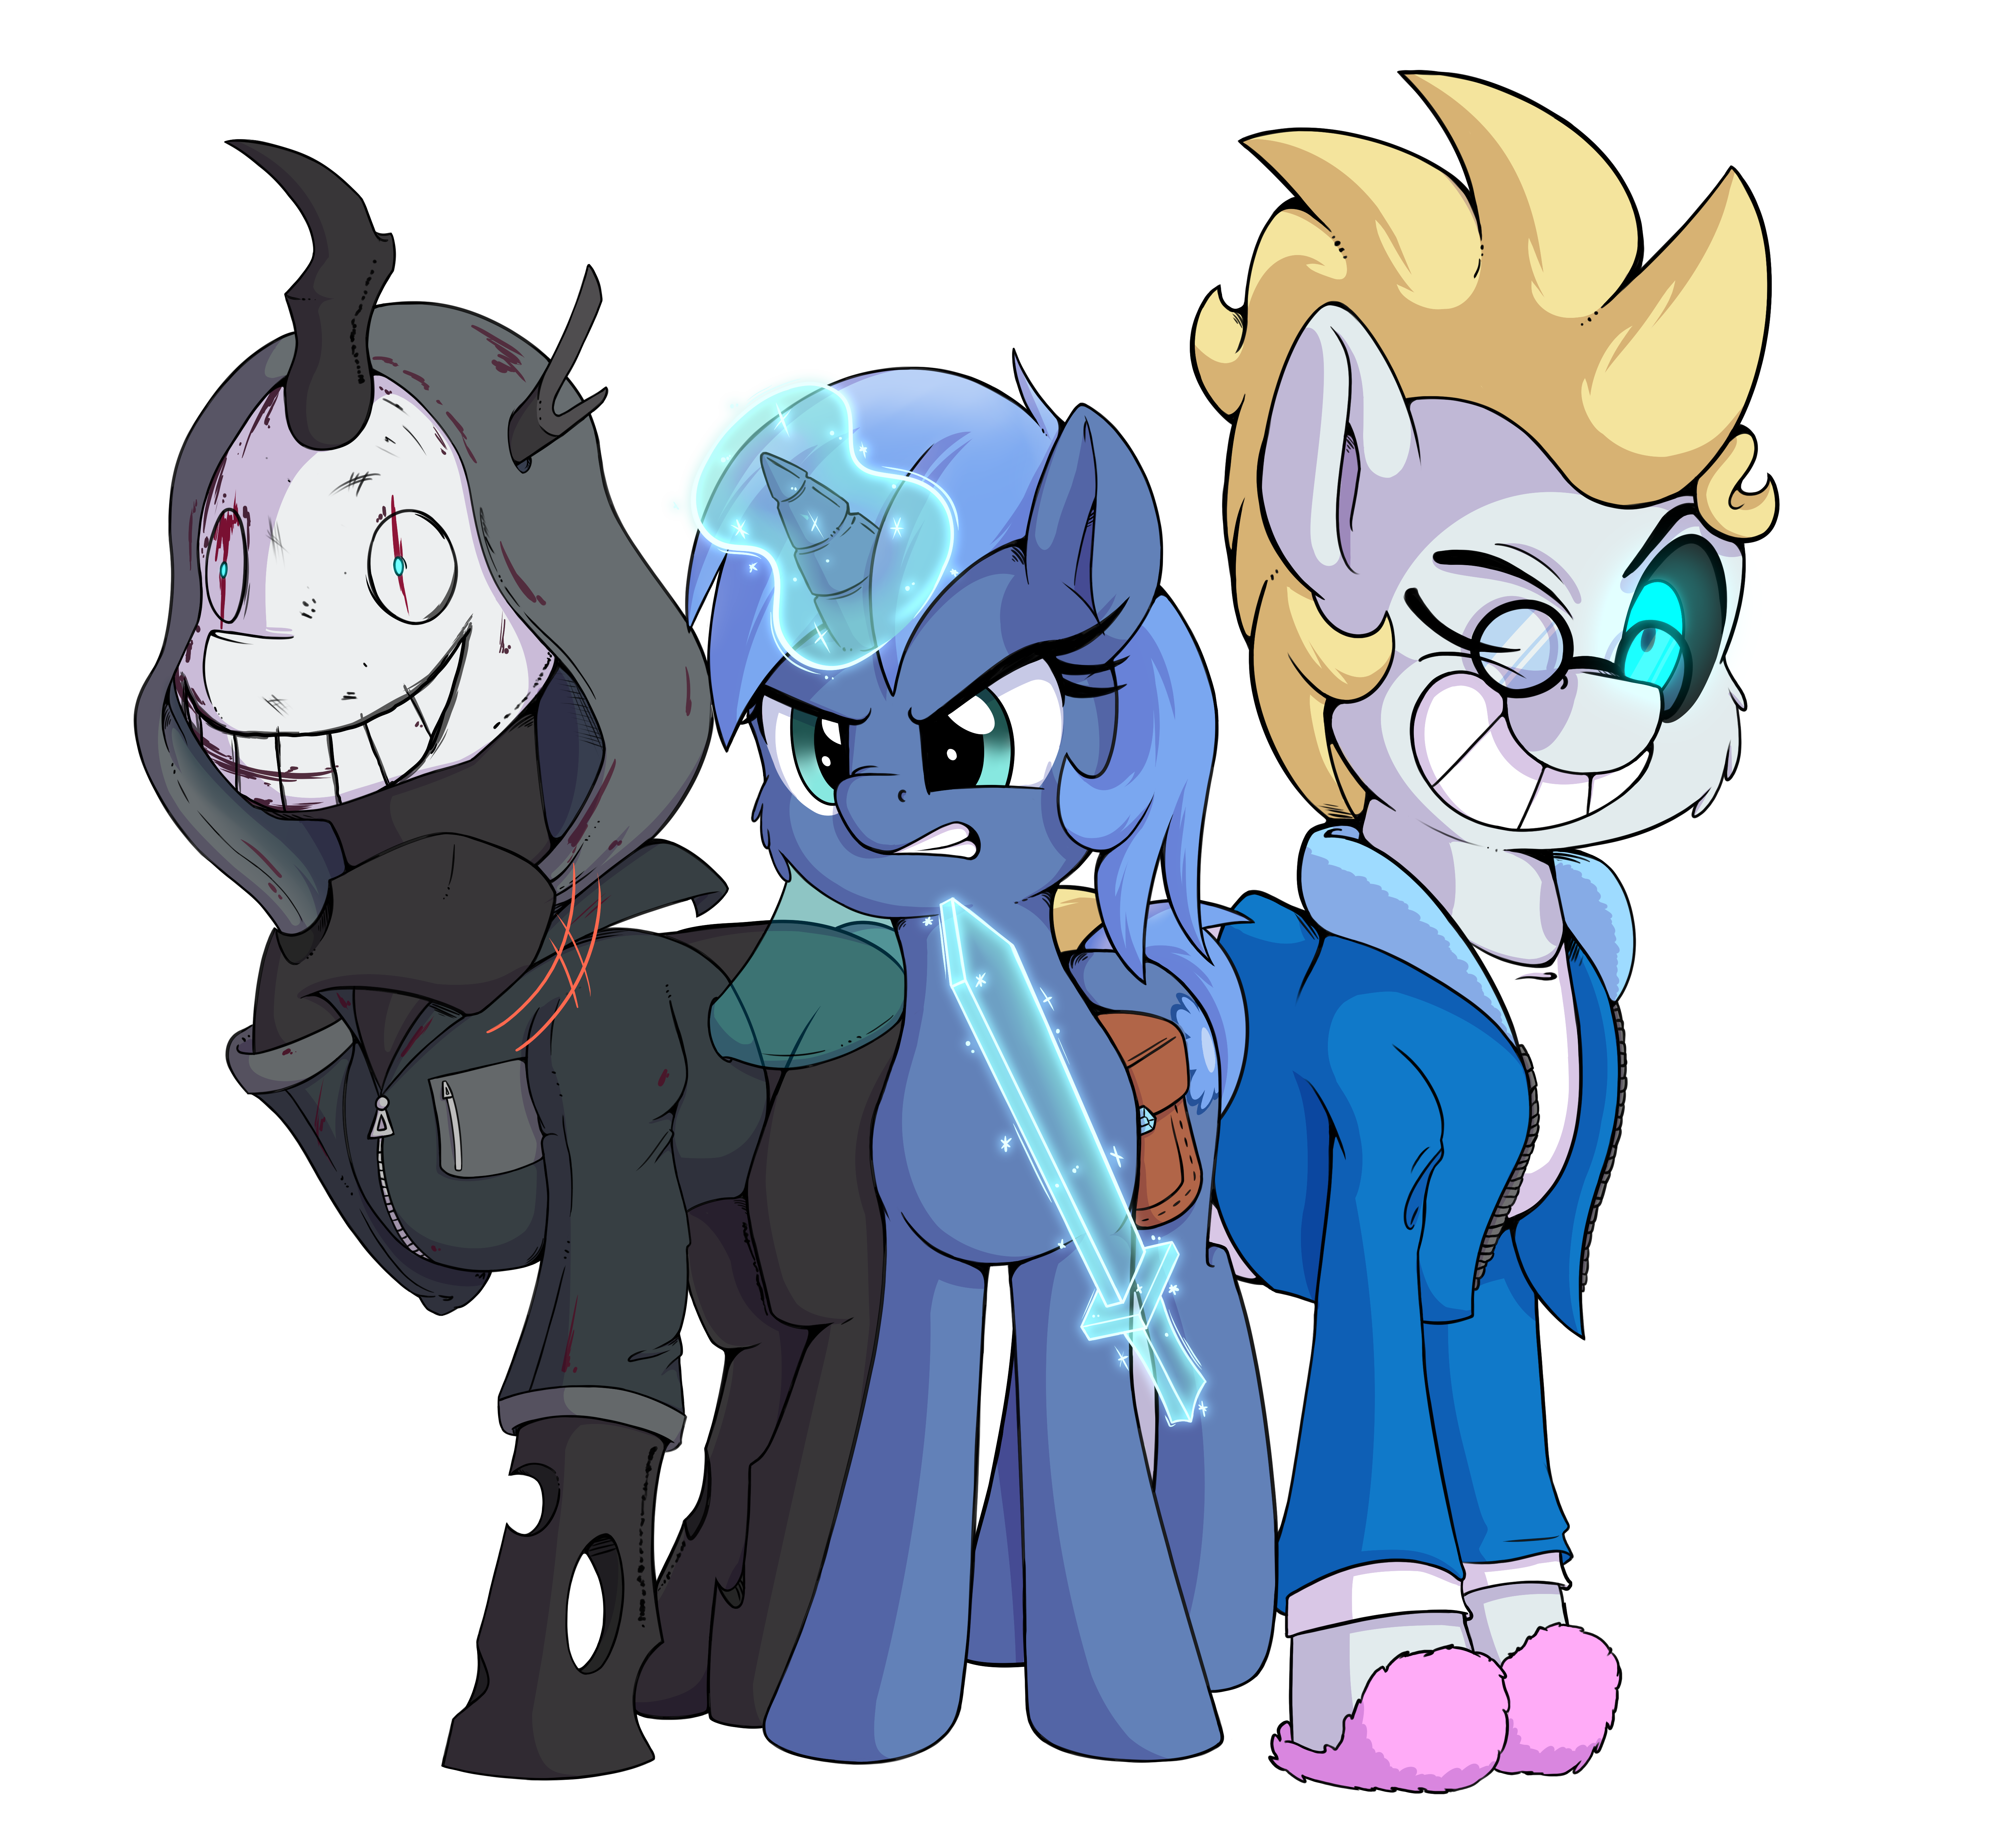 DCC 2020 Group Collab with Discorded and DJDavid98